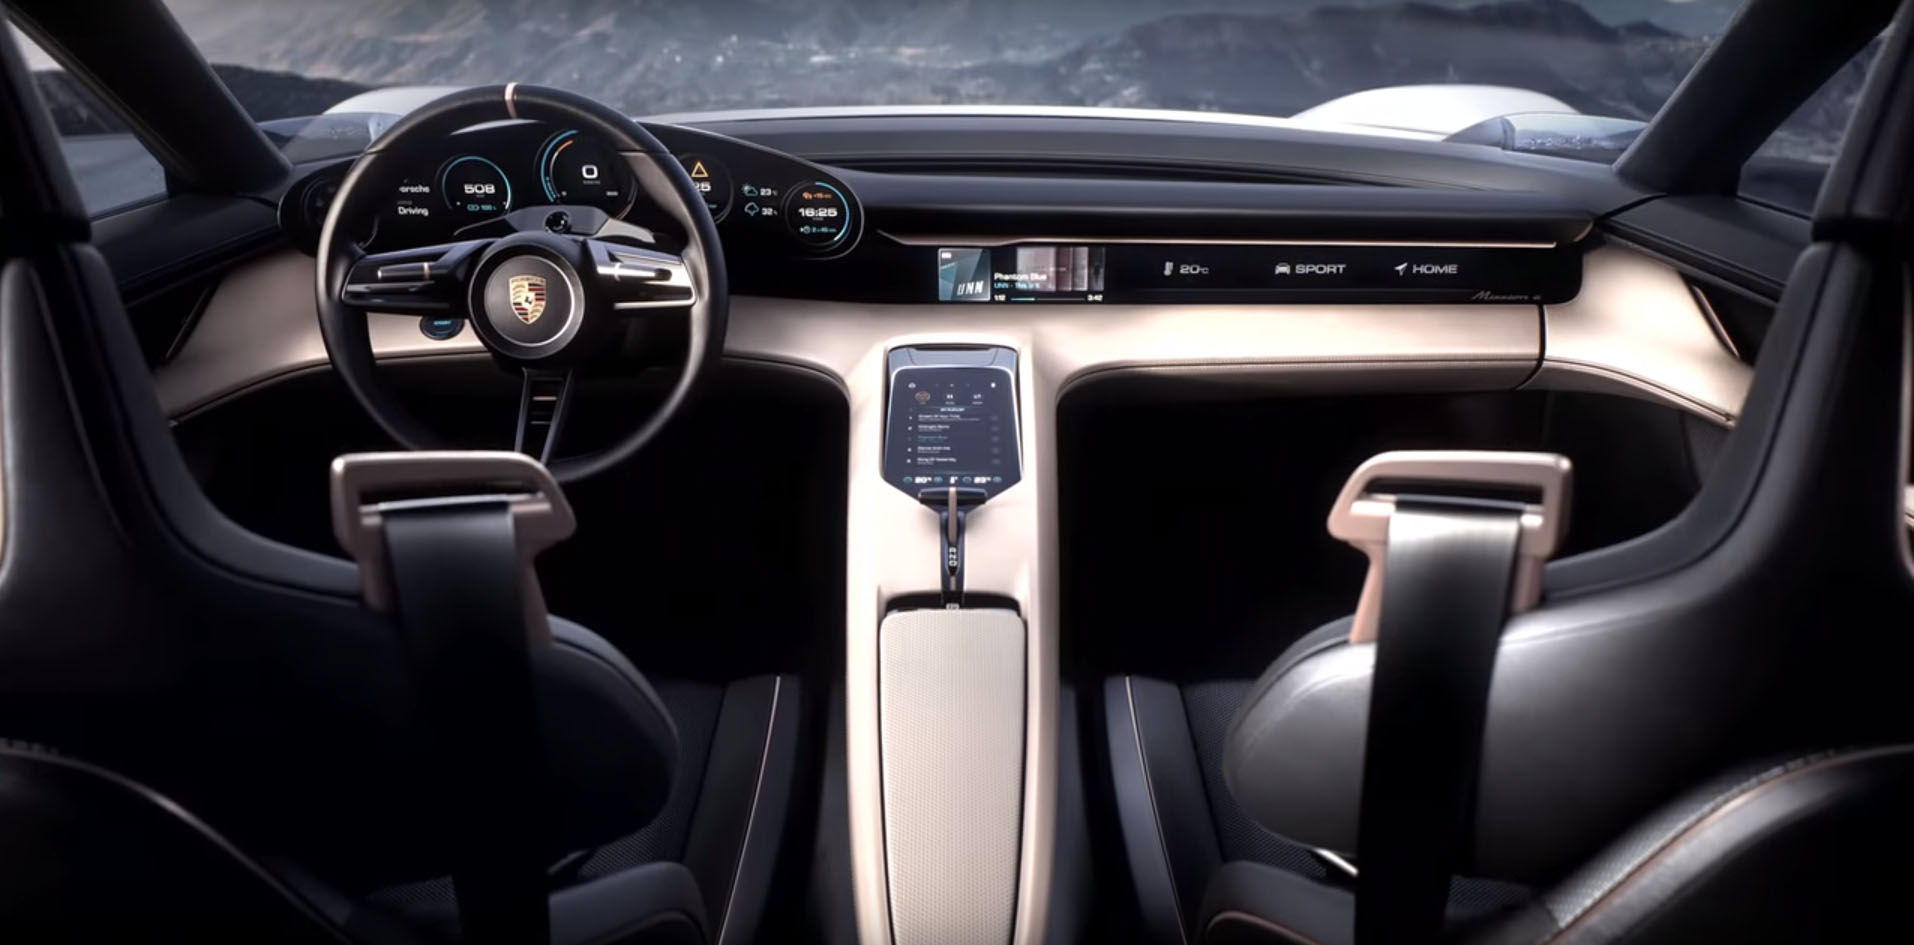 Tesla Model S Interior >> Tesla Hires Porsche Mission E Interior Designer - Resistance Is Truly Futile - autoevolution